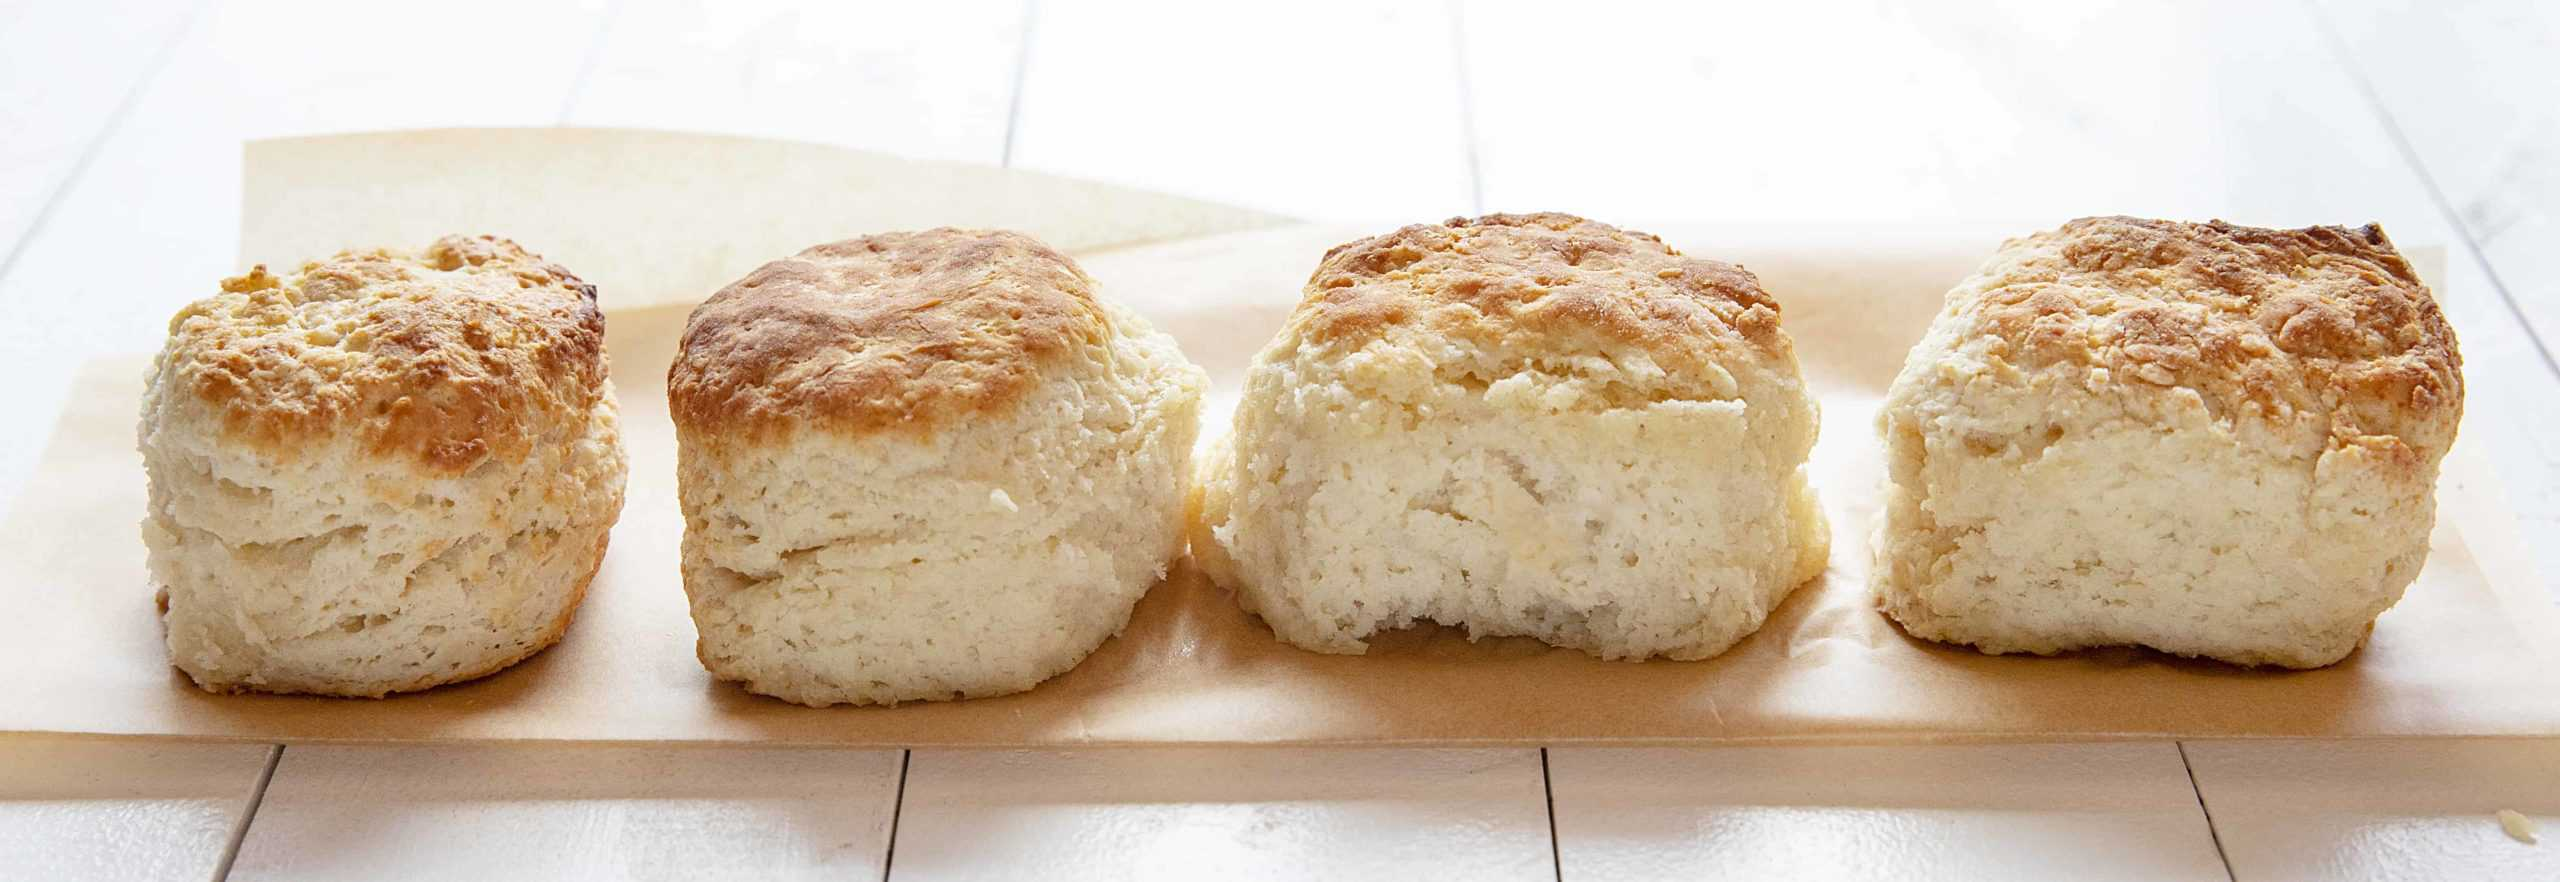 Homemade Buttermilk test with Buttermilk Biscuits